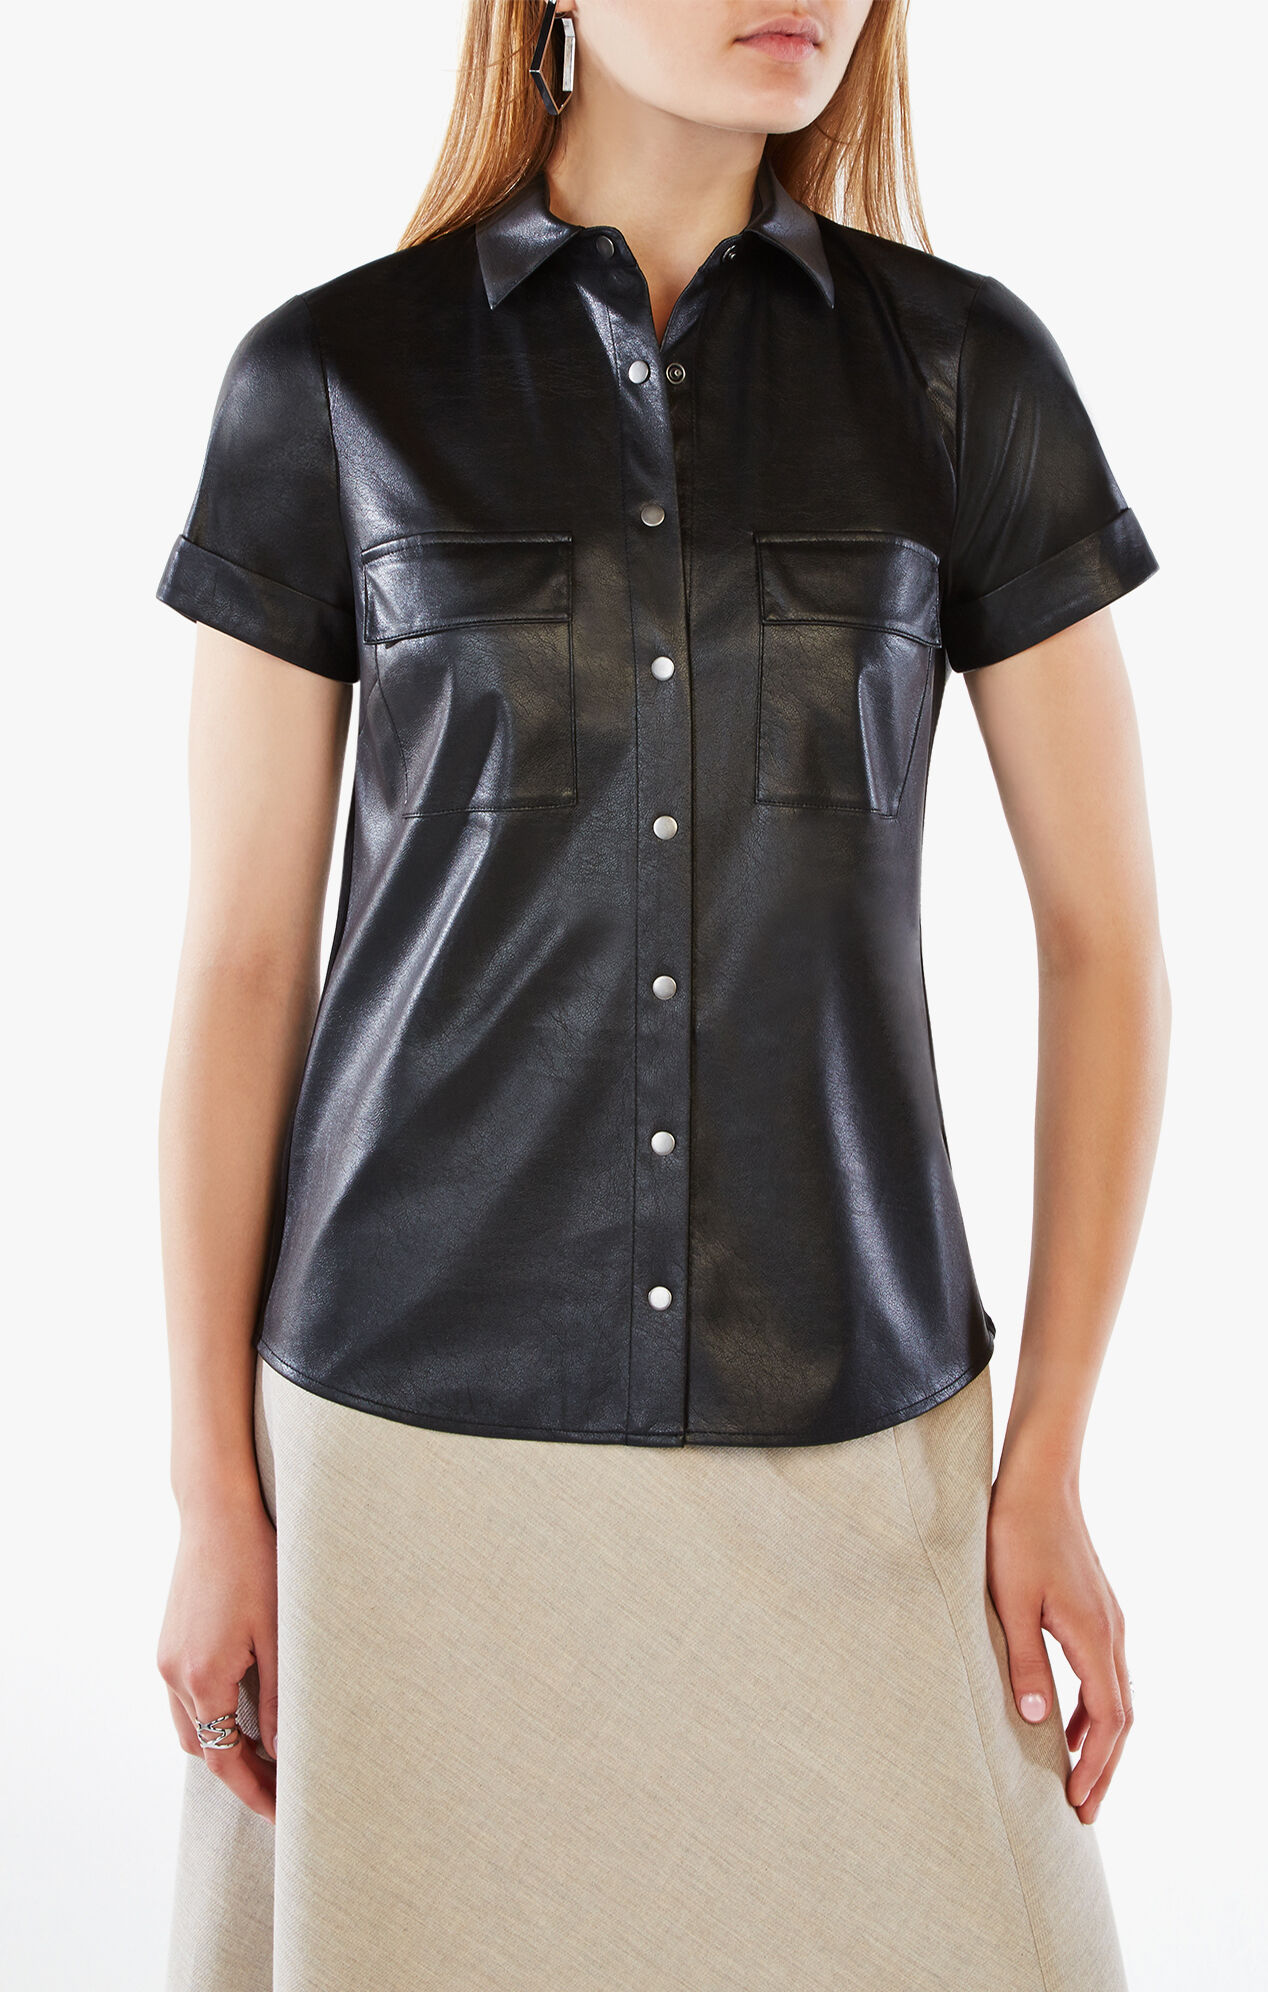 Shirts to wear with leather jackets